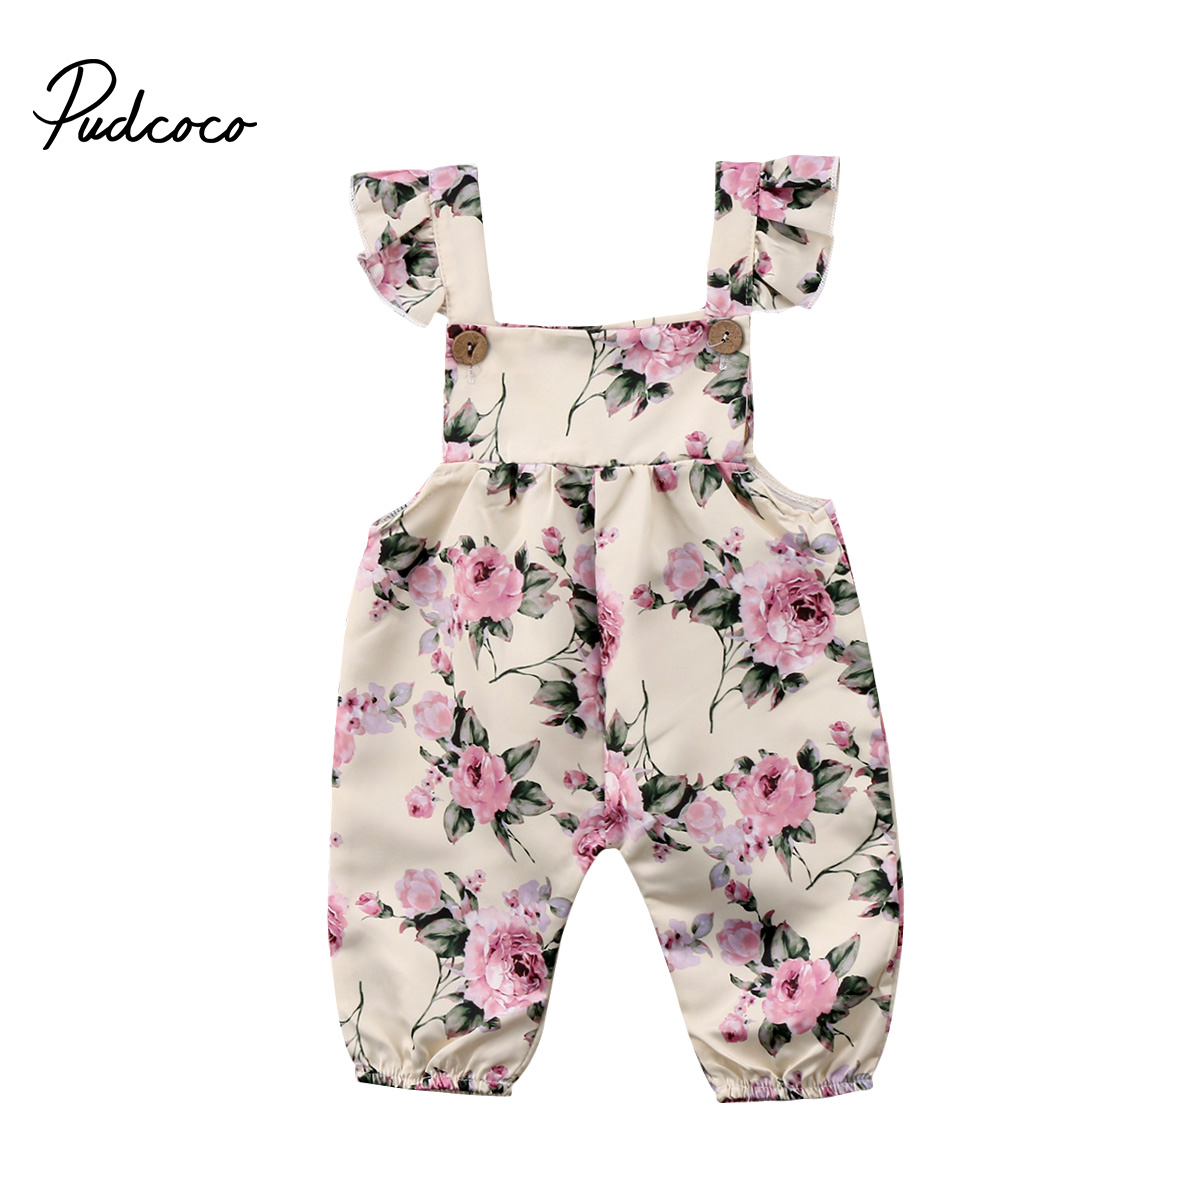 Newborn Infant Baby Girl Floral Romper Jumpsuit Clothes Outfits Sunsuit Fragrant Aroma Outfits & Sets Clothing, Shoes & Accessories